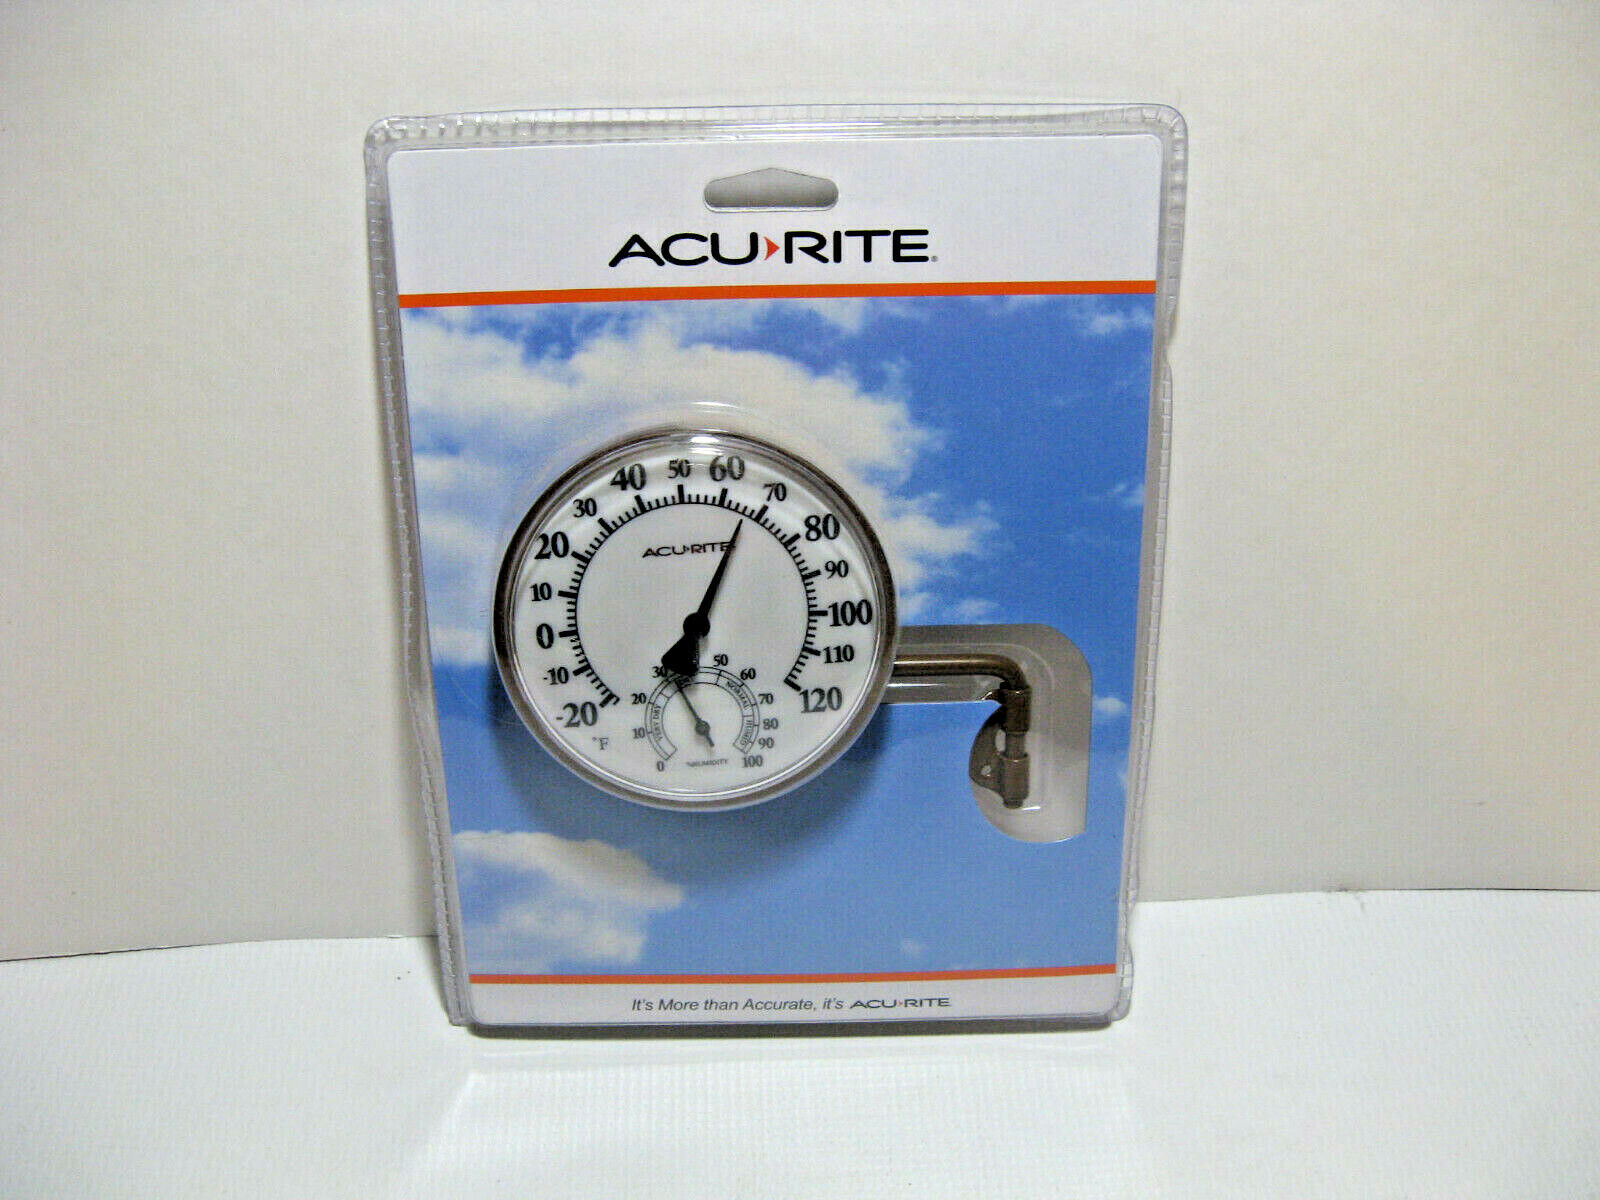 Acurite Swivel Thermometer With Hygrometer (Humidity) Swivel Mount / Easy Read